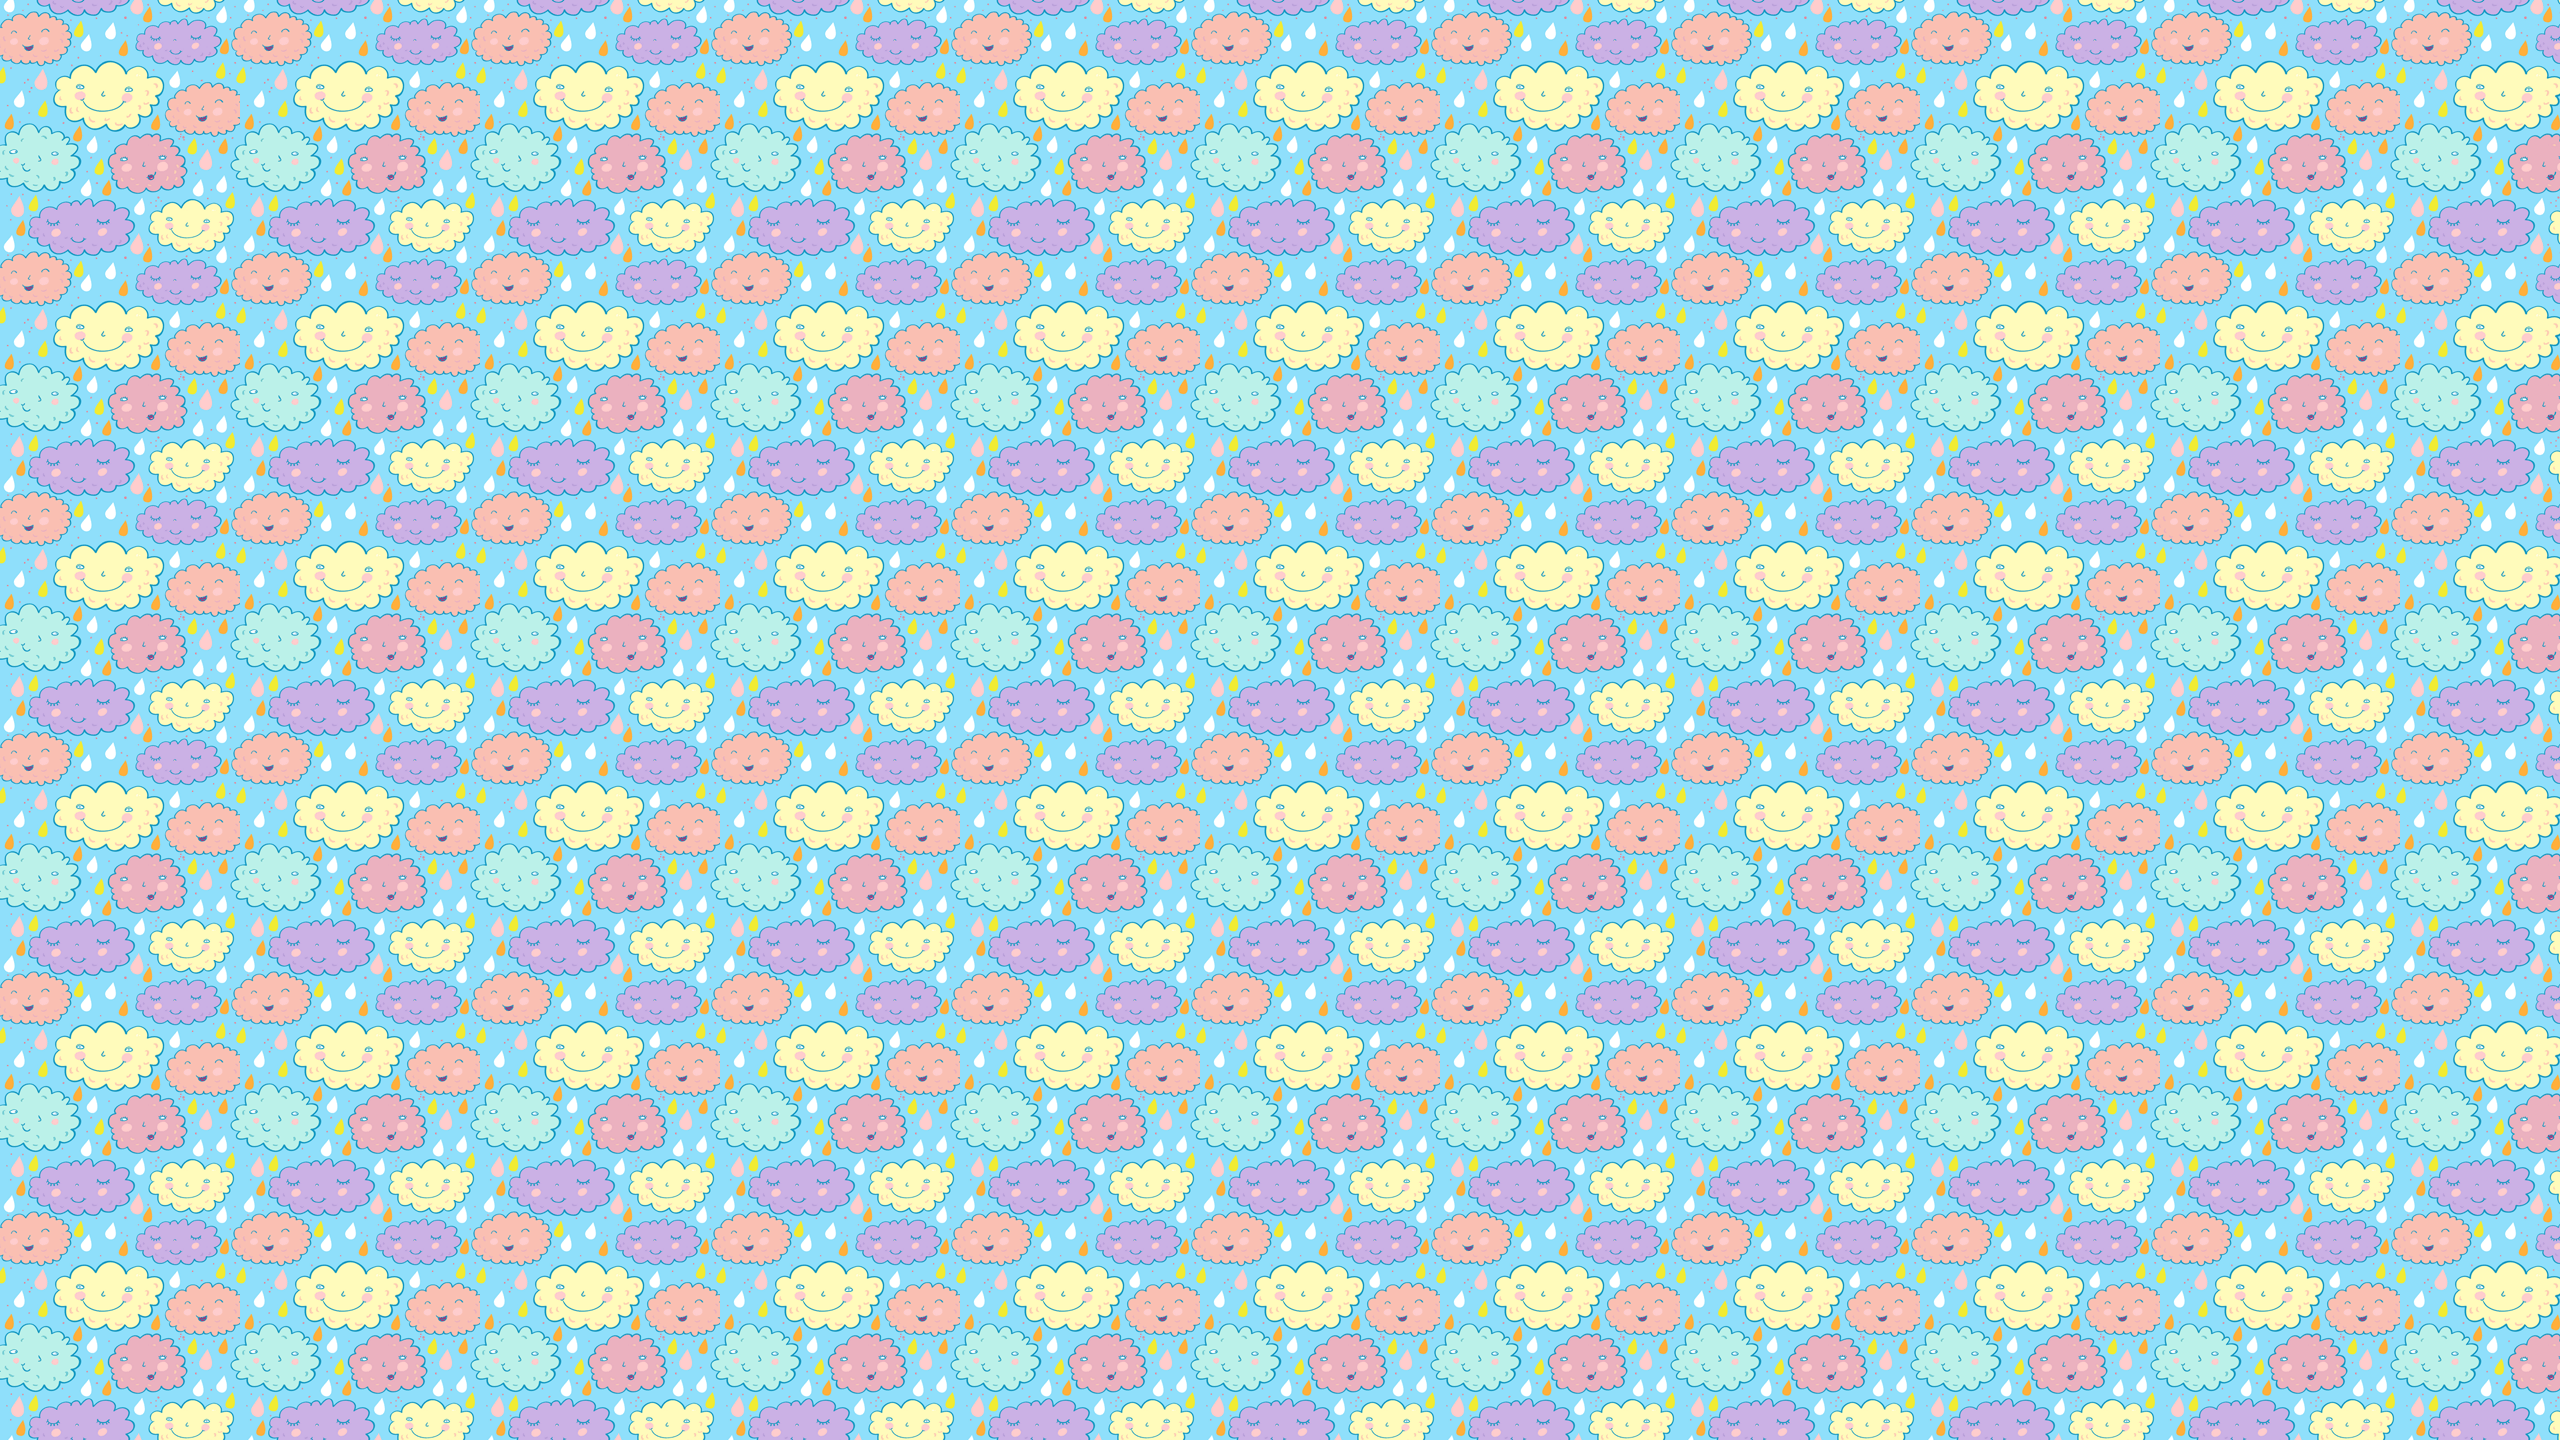 Tumblr Cute Backgrounds Background tumblr cute cute | new and need ... for Background Pattern Tumblr Blue  61obs